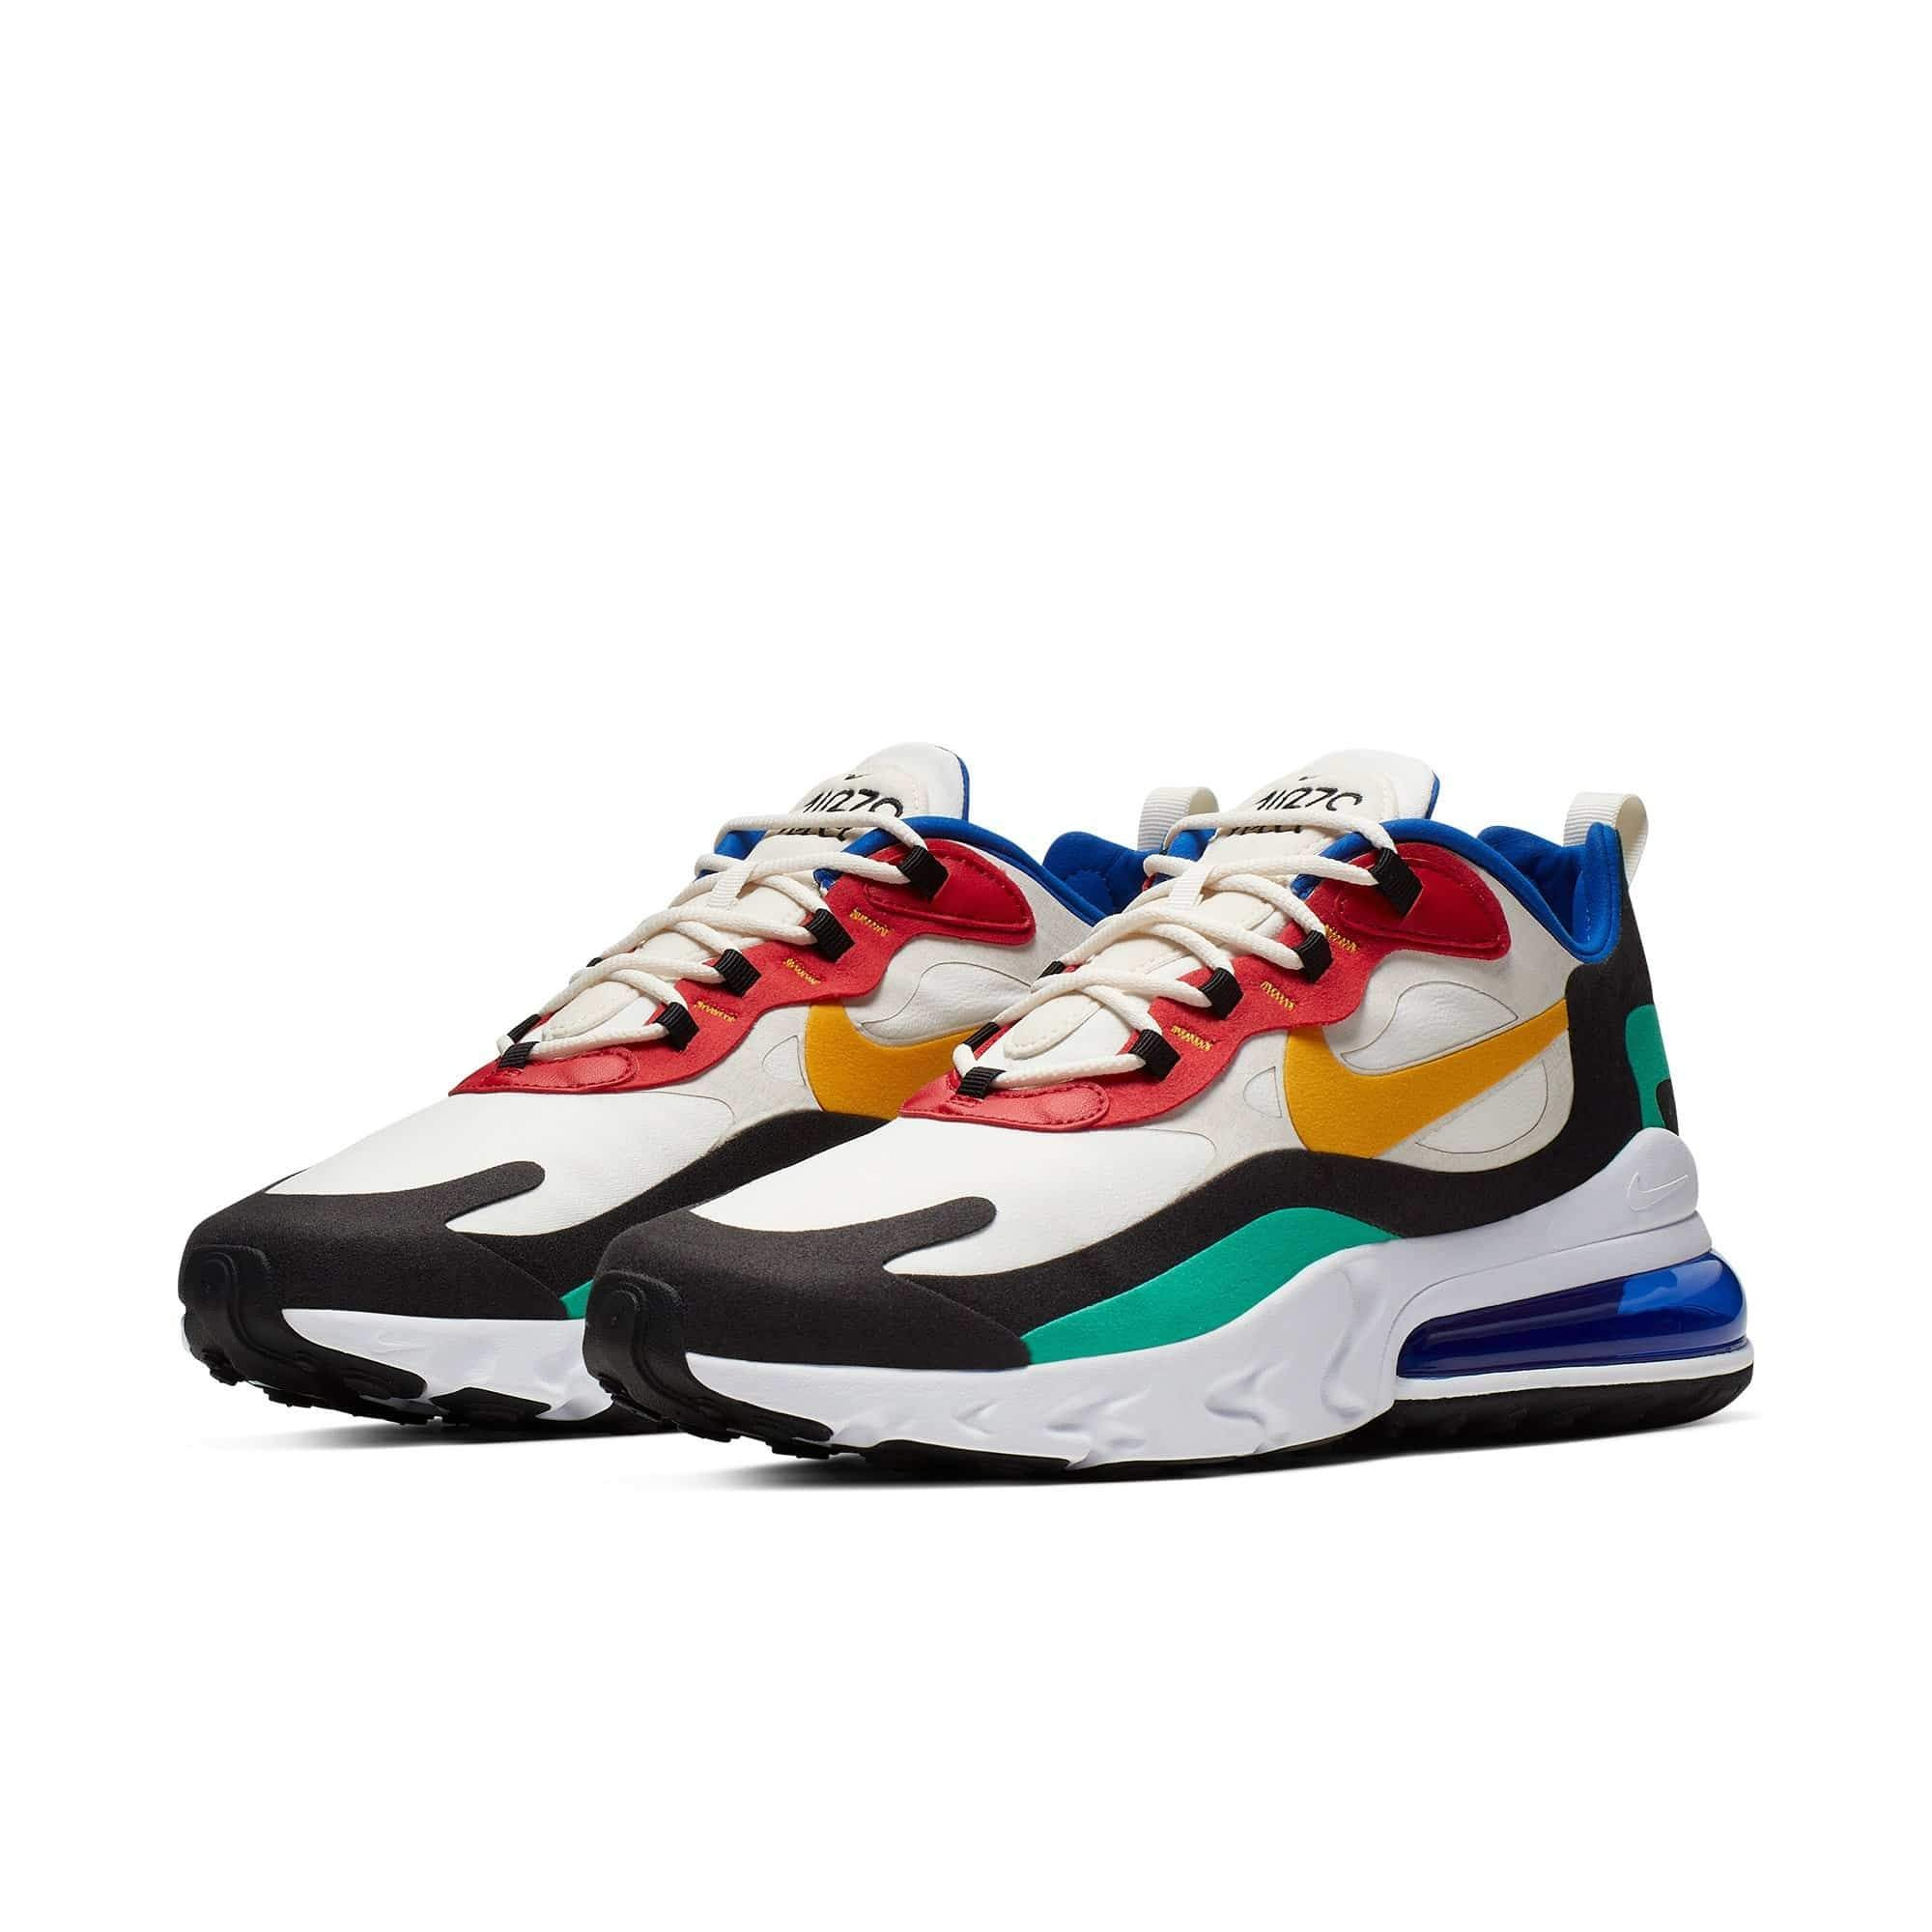 Italians Made Nike Air Max 270 Sneakers Original New Arrival Men Running Shoes Breathable Comfortable Sneakers #AO4971